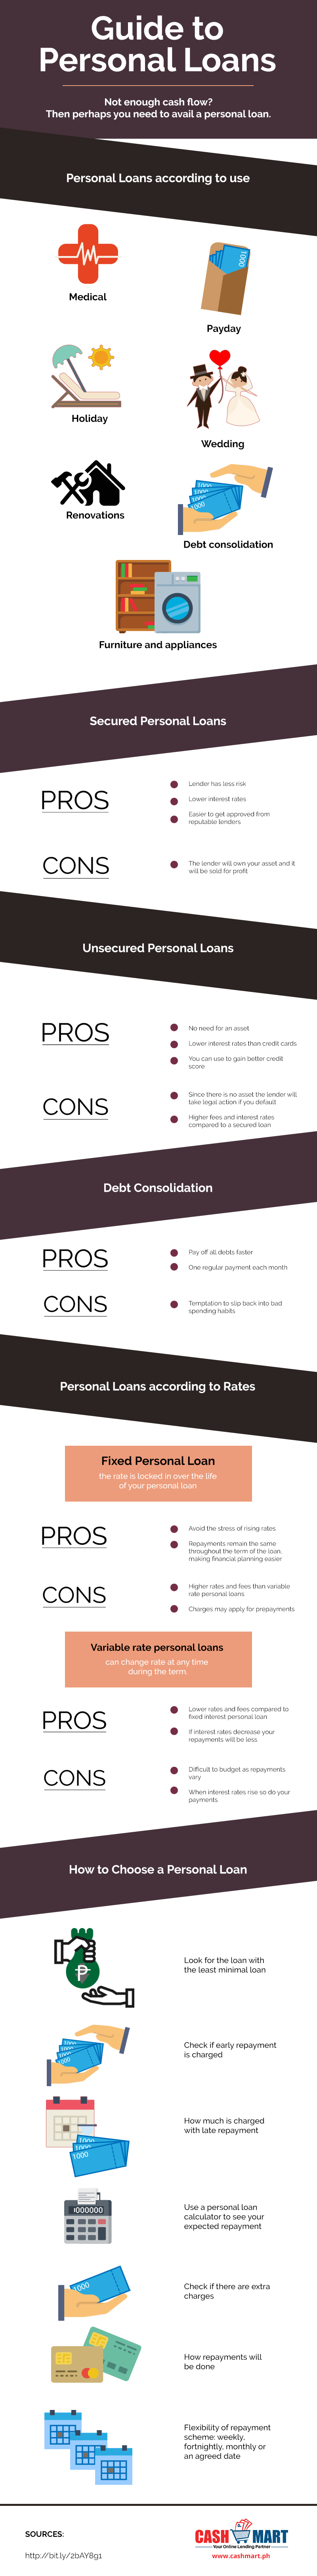 guide-to-personal-loans